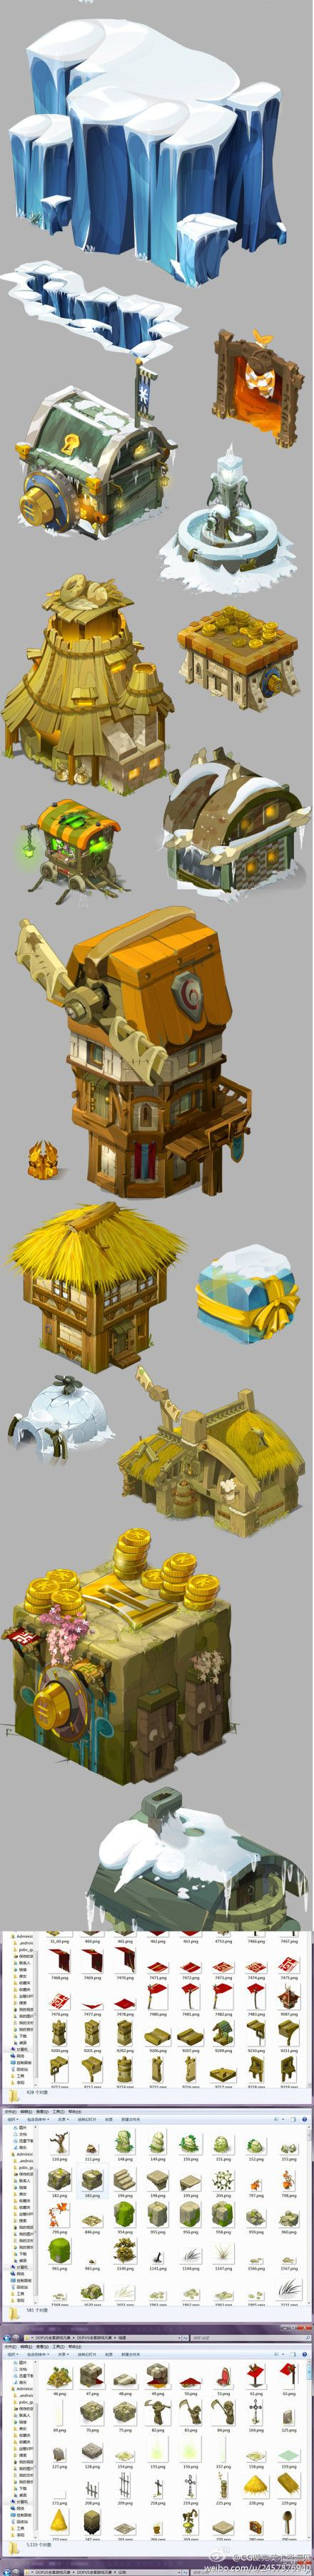 #Game #UI #design #DOFUS